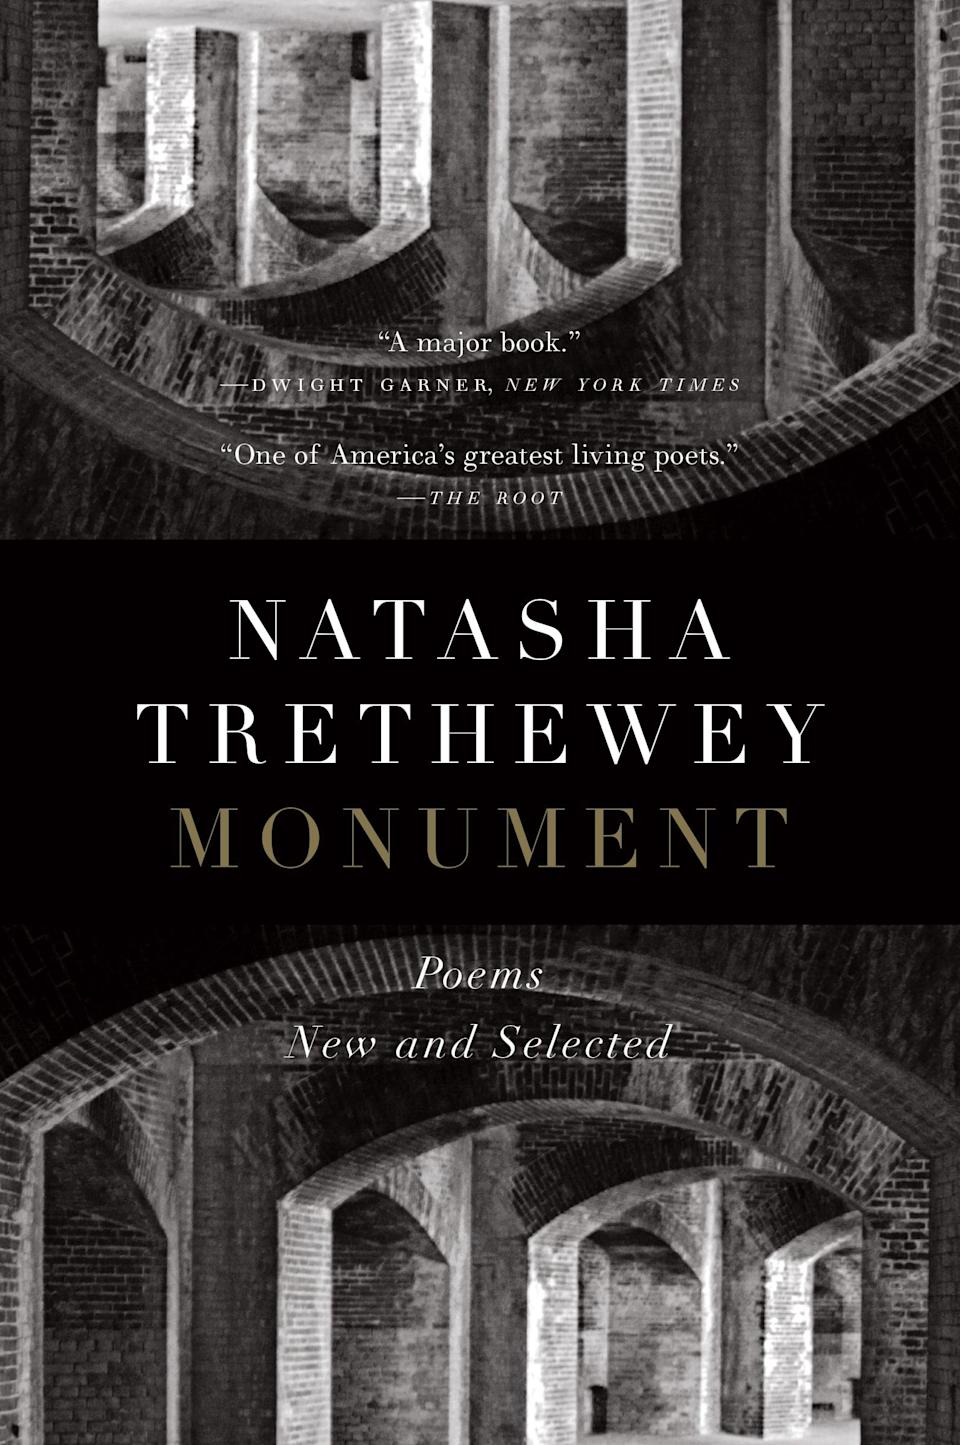 """<p>A good friend of mine introduced me to former United States Poet Laureate <a href=""""https://www.popsugar.com/buy?url=https%3A%2F%2Fwww.amazon.com%2FMonument-Poems-Selected-Natasha-Trethewey%2Fdp%2F132850784X&p_name=Natasha%20Trethewey%27s%20poems&retailer=amazon.com&evar1=news%3Aus&evar9=47518818&evar98=https%3A%2F%2Fwww.popsugar.com%2Fnews%2Fphoto-gallery%2F47518818%2Fimage%2F47518841%2FMonument-Poems-New-Selected-by-Natasha-Trethewey&list1=books%2Crace%2Cracism&prop13=api&pdata=1"""" class=""""link rapid-noclick-resp"""" rel=""""nofollow noopener"""" target=""""_blank"""" data-ylk=""""slk:Natasha Trethewey's poems"""">Natasha Trethewey's poems</a>, and I'm forever grateful. <a href=""""https://www.npr.org/templates/story/story.php?storyId=99474984#:~:text=Like%20President%20Obama%2C%20poet%20Natasha,despised%20in%20parts%20of%20society."""" class=""""link rapid-noclick-resp"""" rel=""""nofollow noopener"""" target=""""_blank"""" data-ylk=""""slk:Trethewey's parents defied laws banning interracial marriage when they married in the 1960s"""">Trethewey's parents defied laws banning interracial marriage when they married in the 1960s</a>, and she uses her poems to excavate family stories that are both personal and political, shedding light on too-often-ignored Black voices in American history.</p>"""